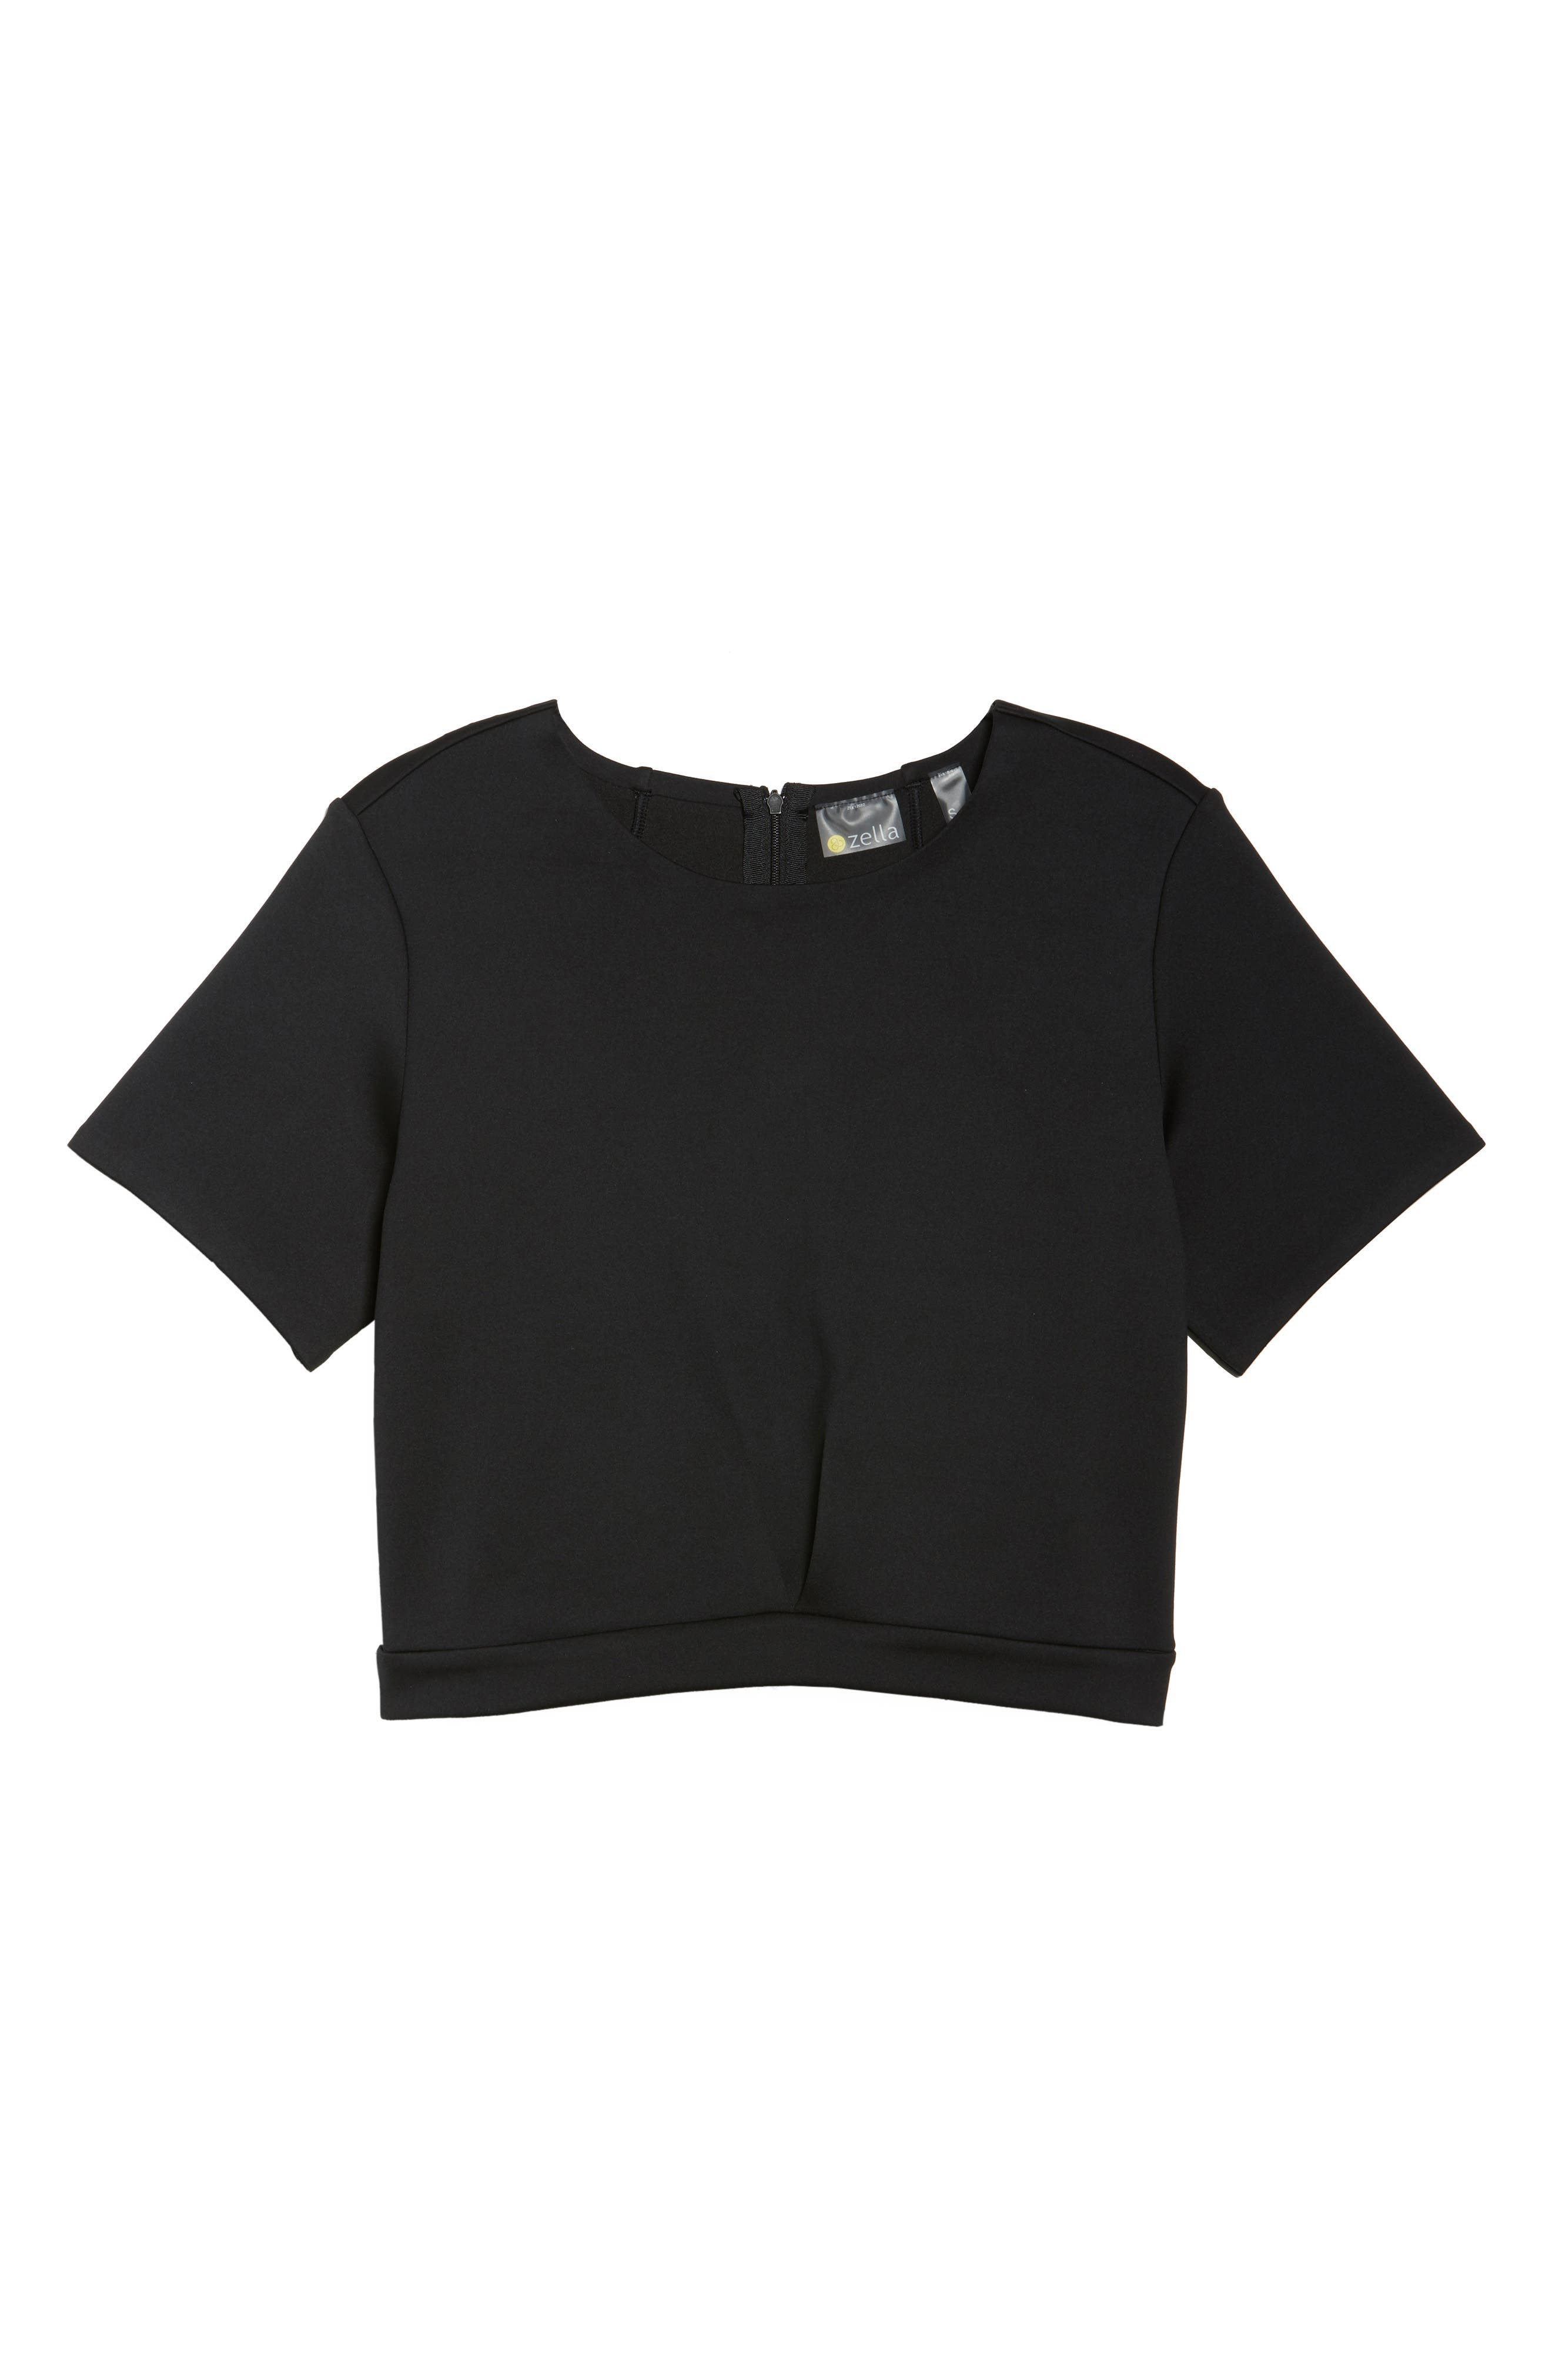 Any Day Crop Top,                             Alternate thumbnail 7, color,                             001